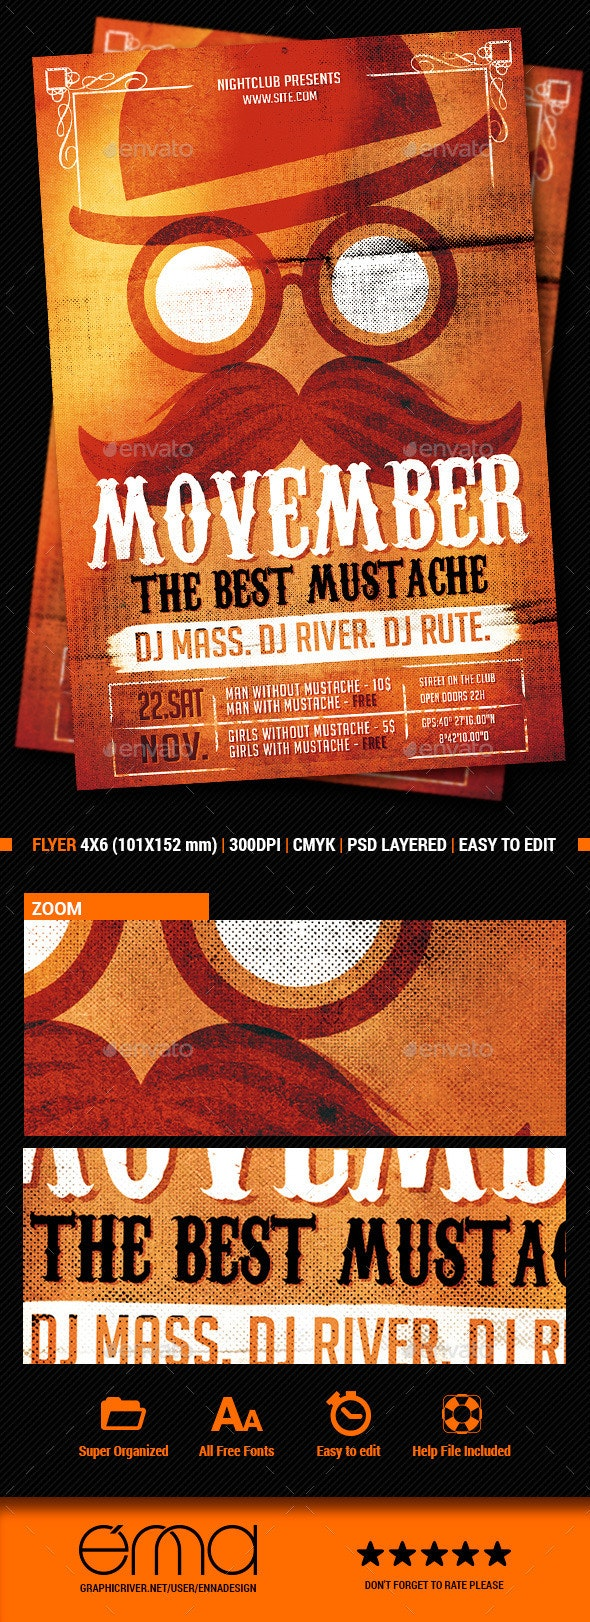 The Mustache - Events Flyers